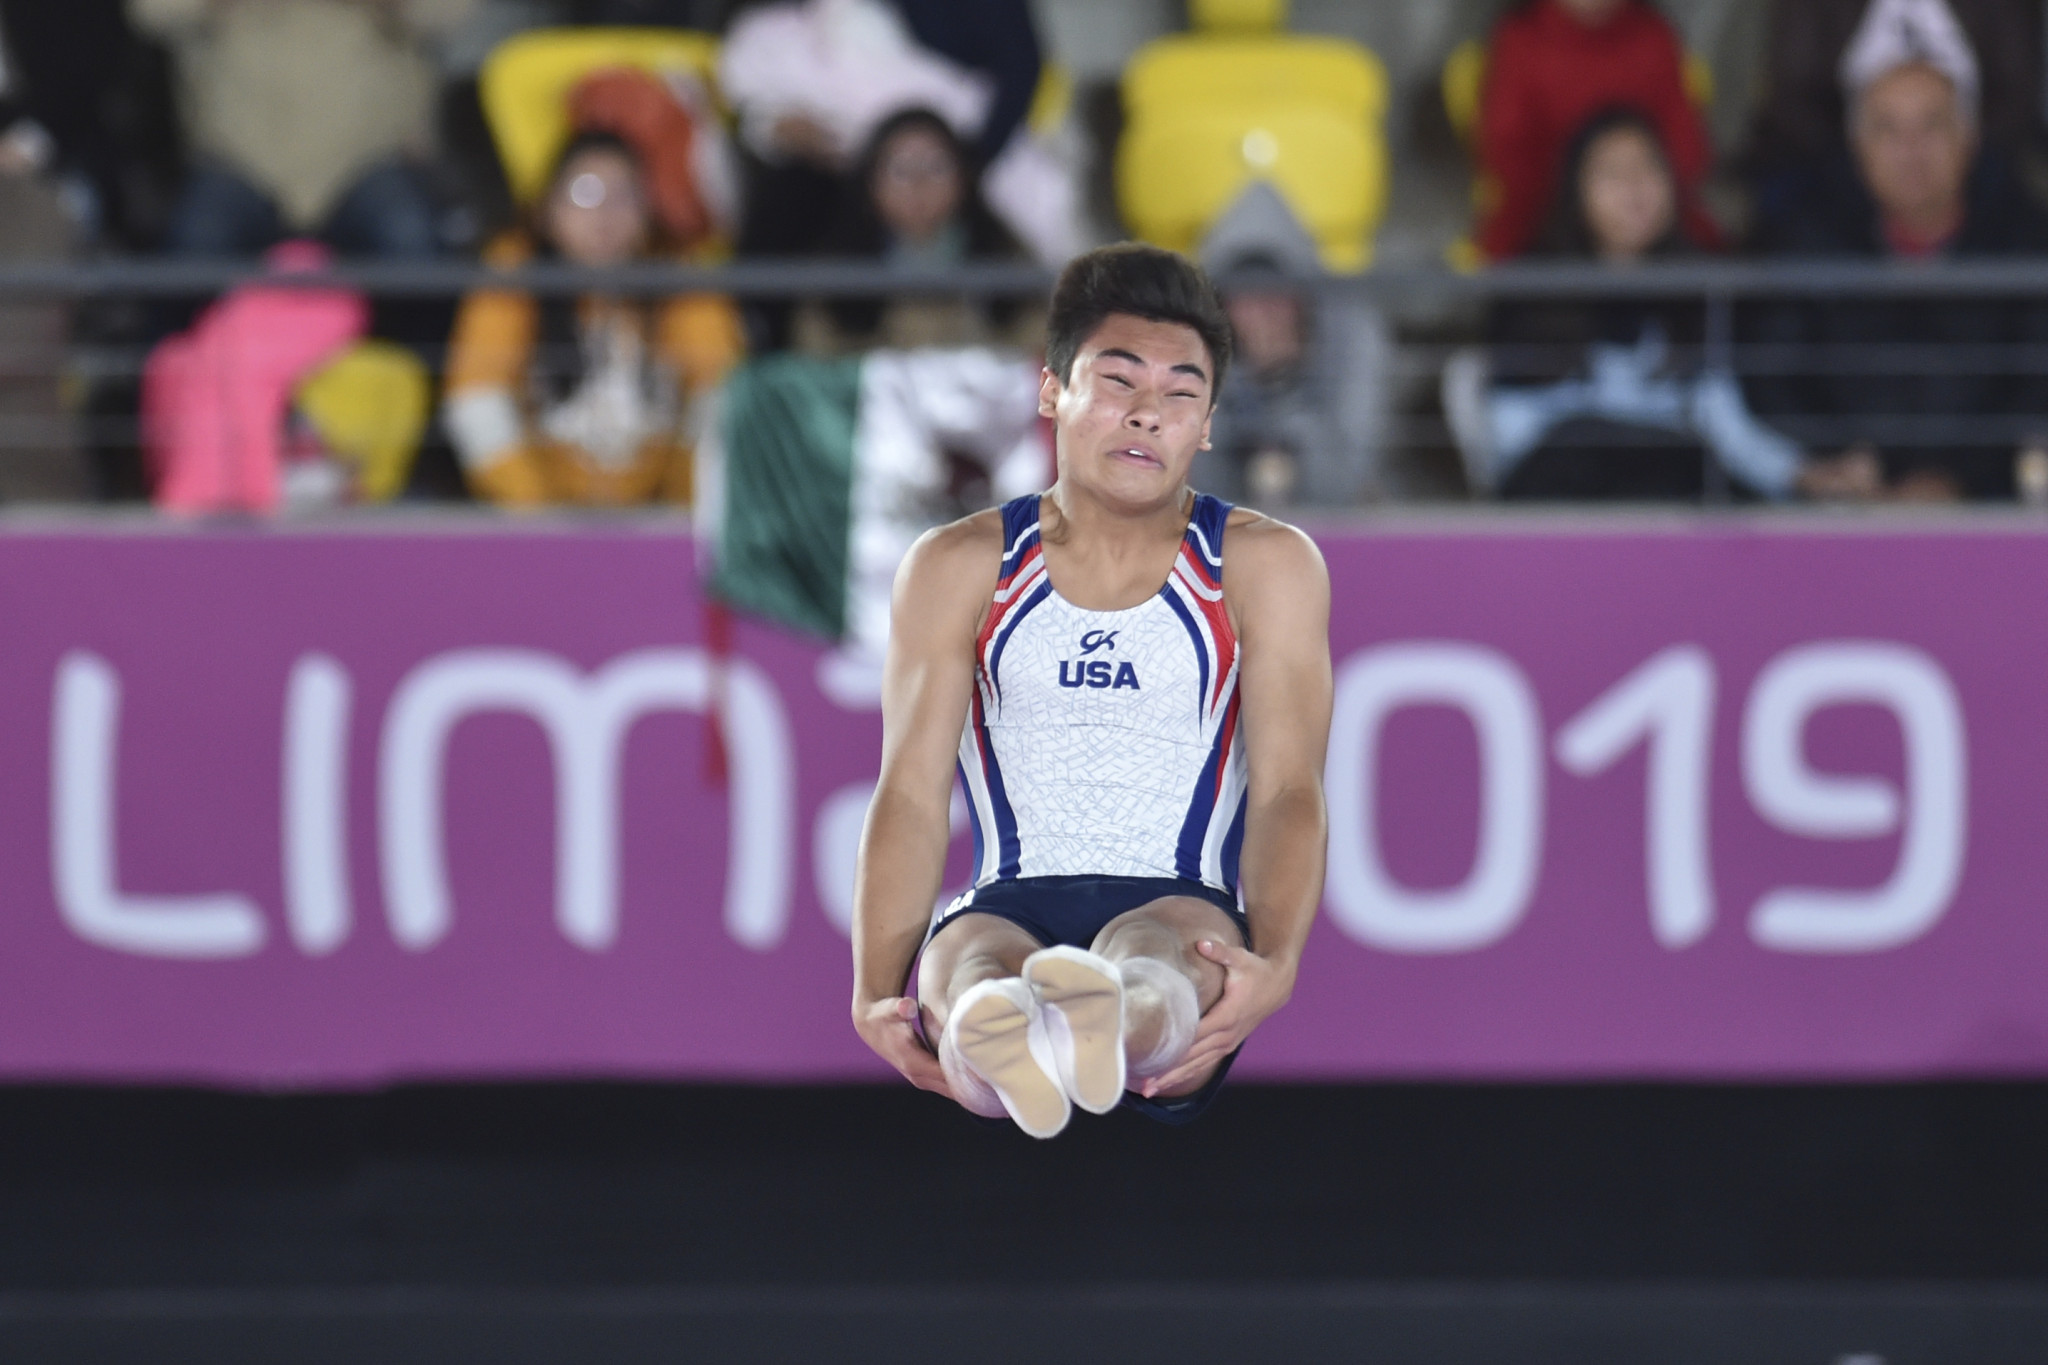 Padilla ties with hero Zalomin on day one of FIG Trampoline World Championships